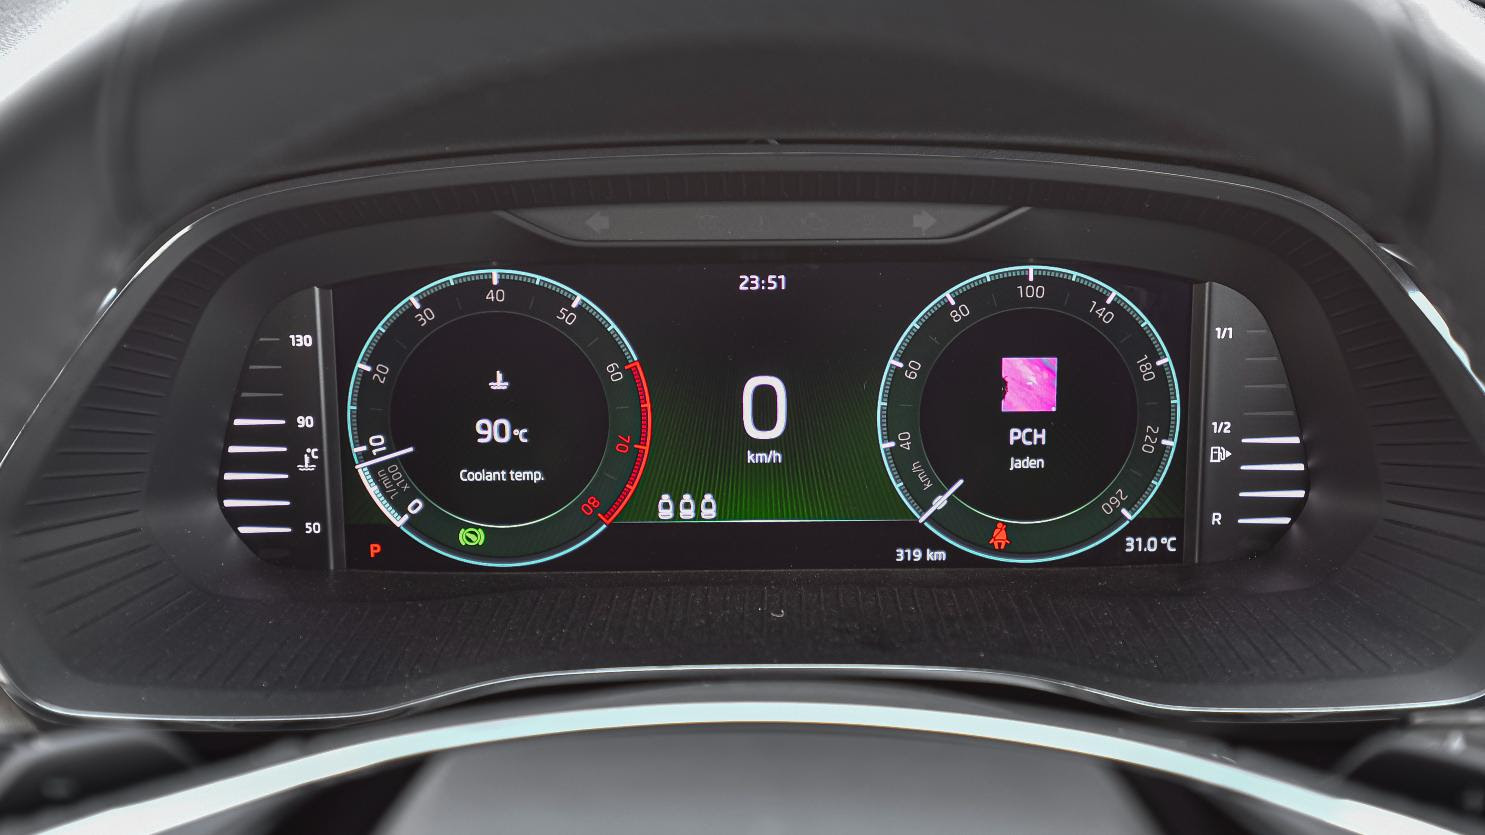 'Virtual Cockpit' digital instruments display stays inconspicuous, but is sharp and legible at all times. Image: Overdrive/Anis Shaikh